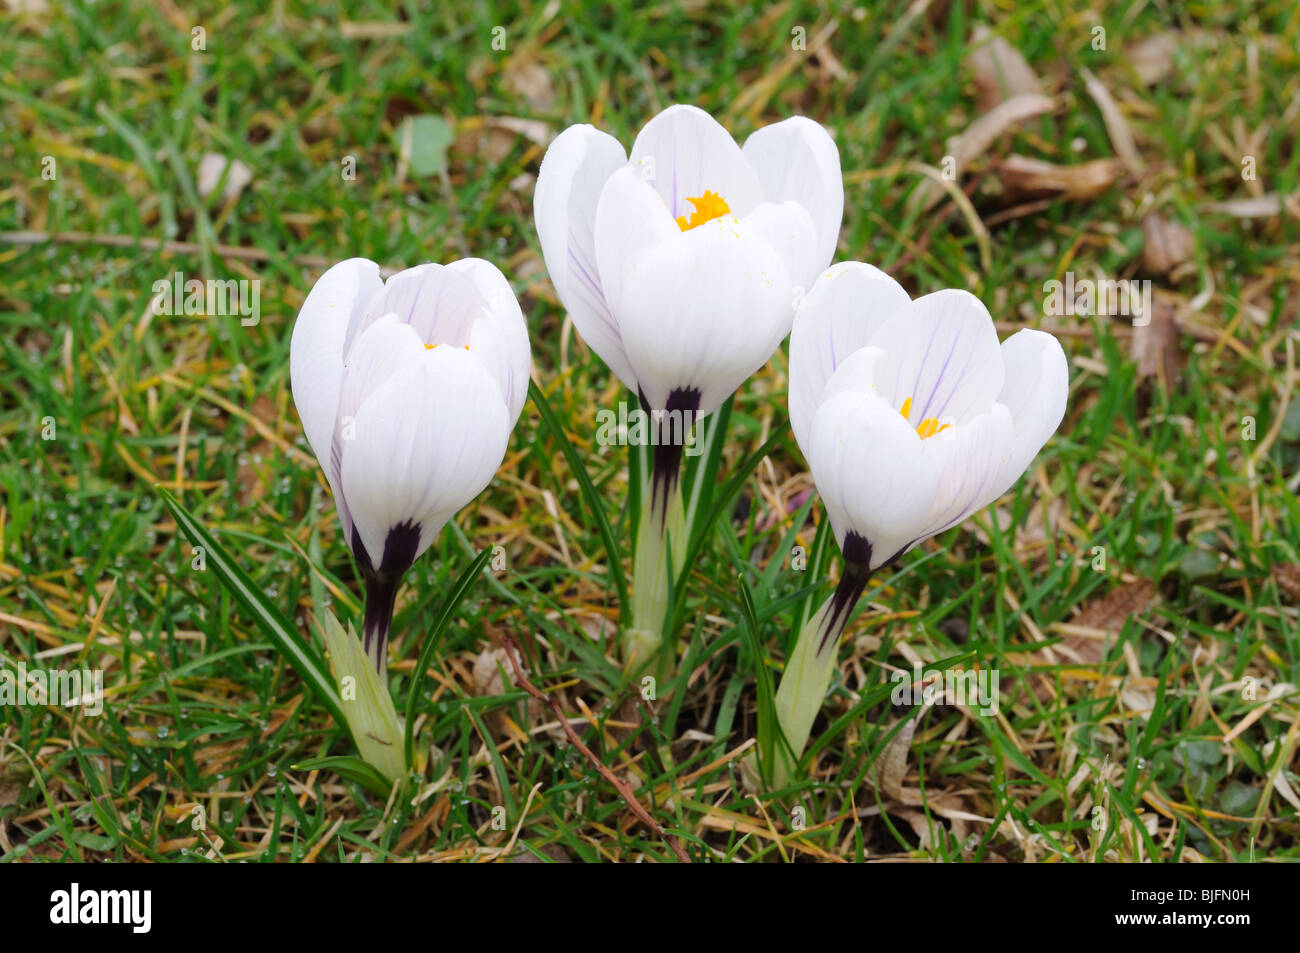 Wild white crocus flowers stock photos wild white crocus flowers beautiful white crocus flowers stock image mightylinksfo